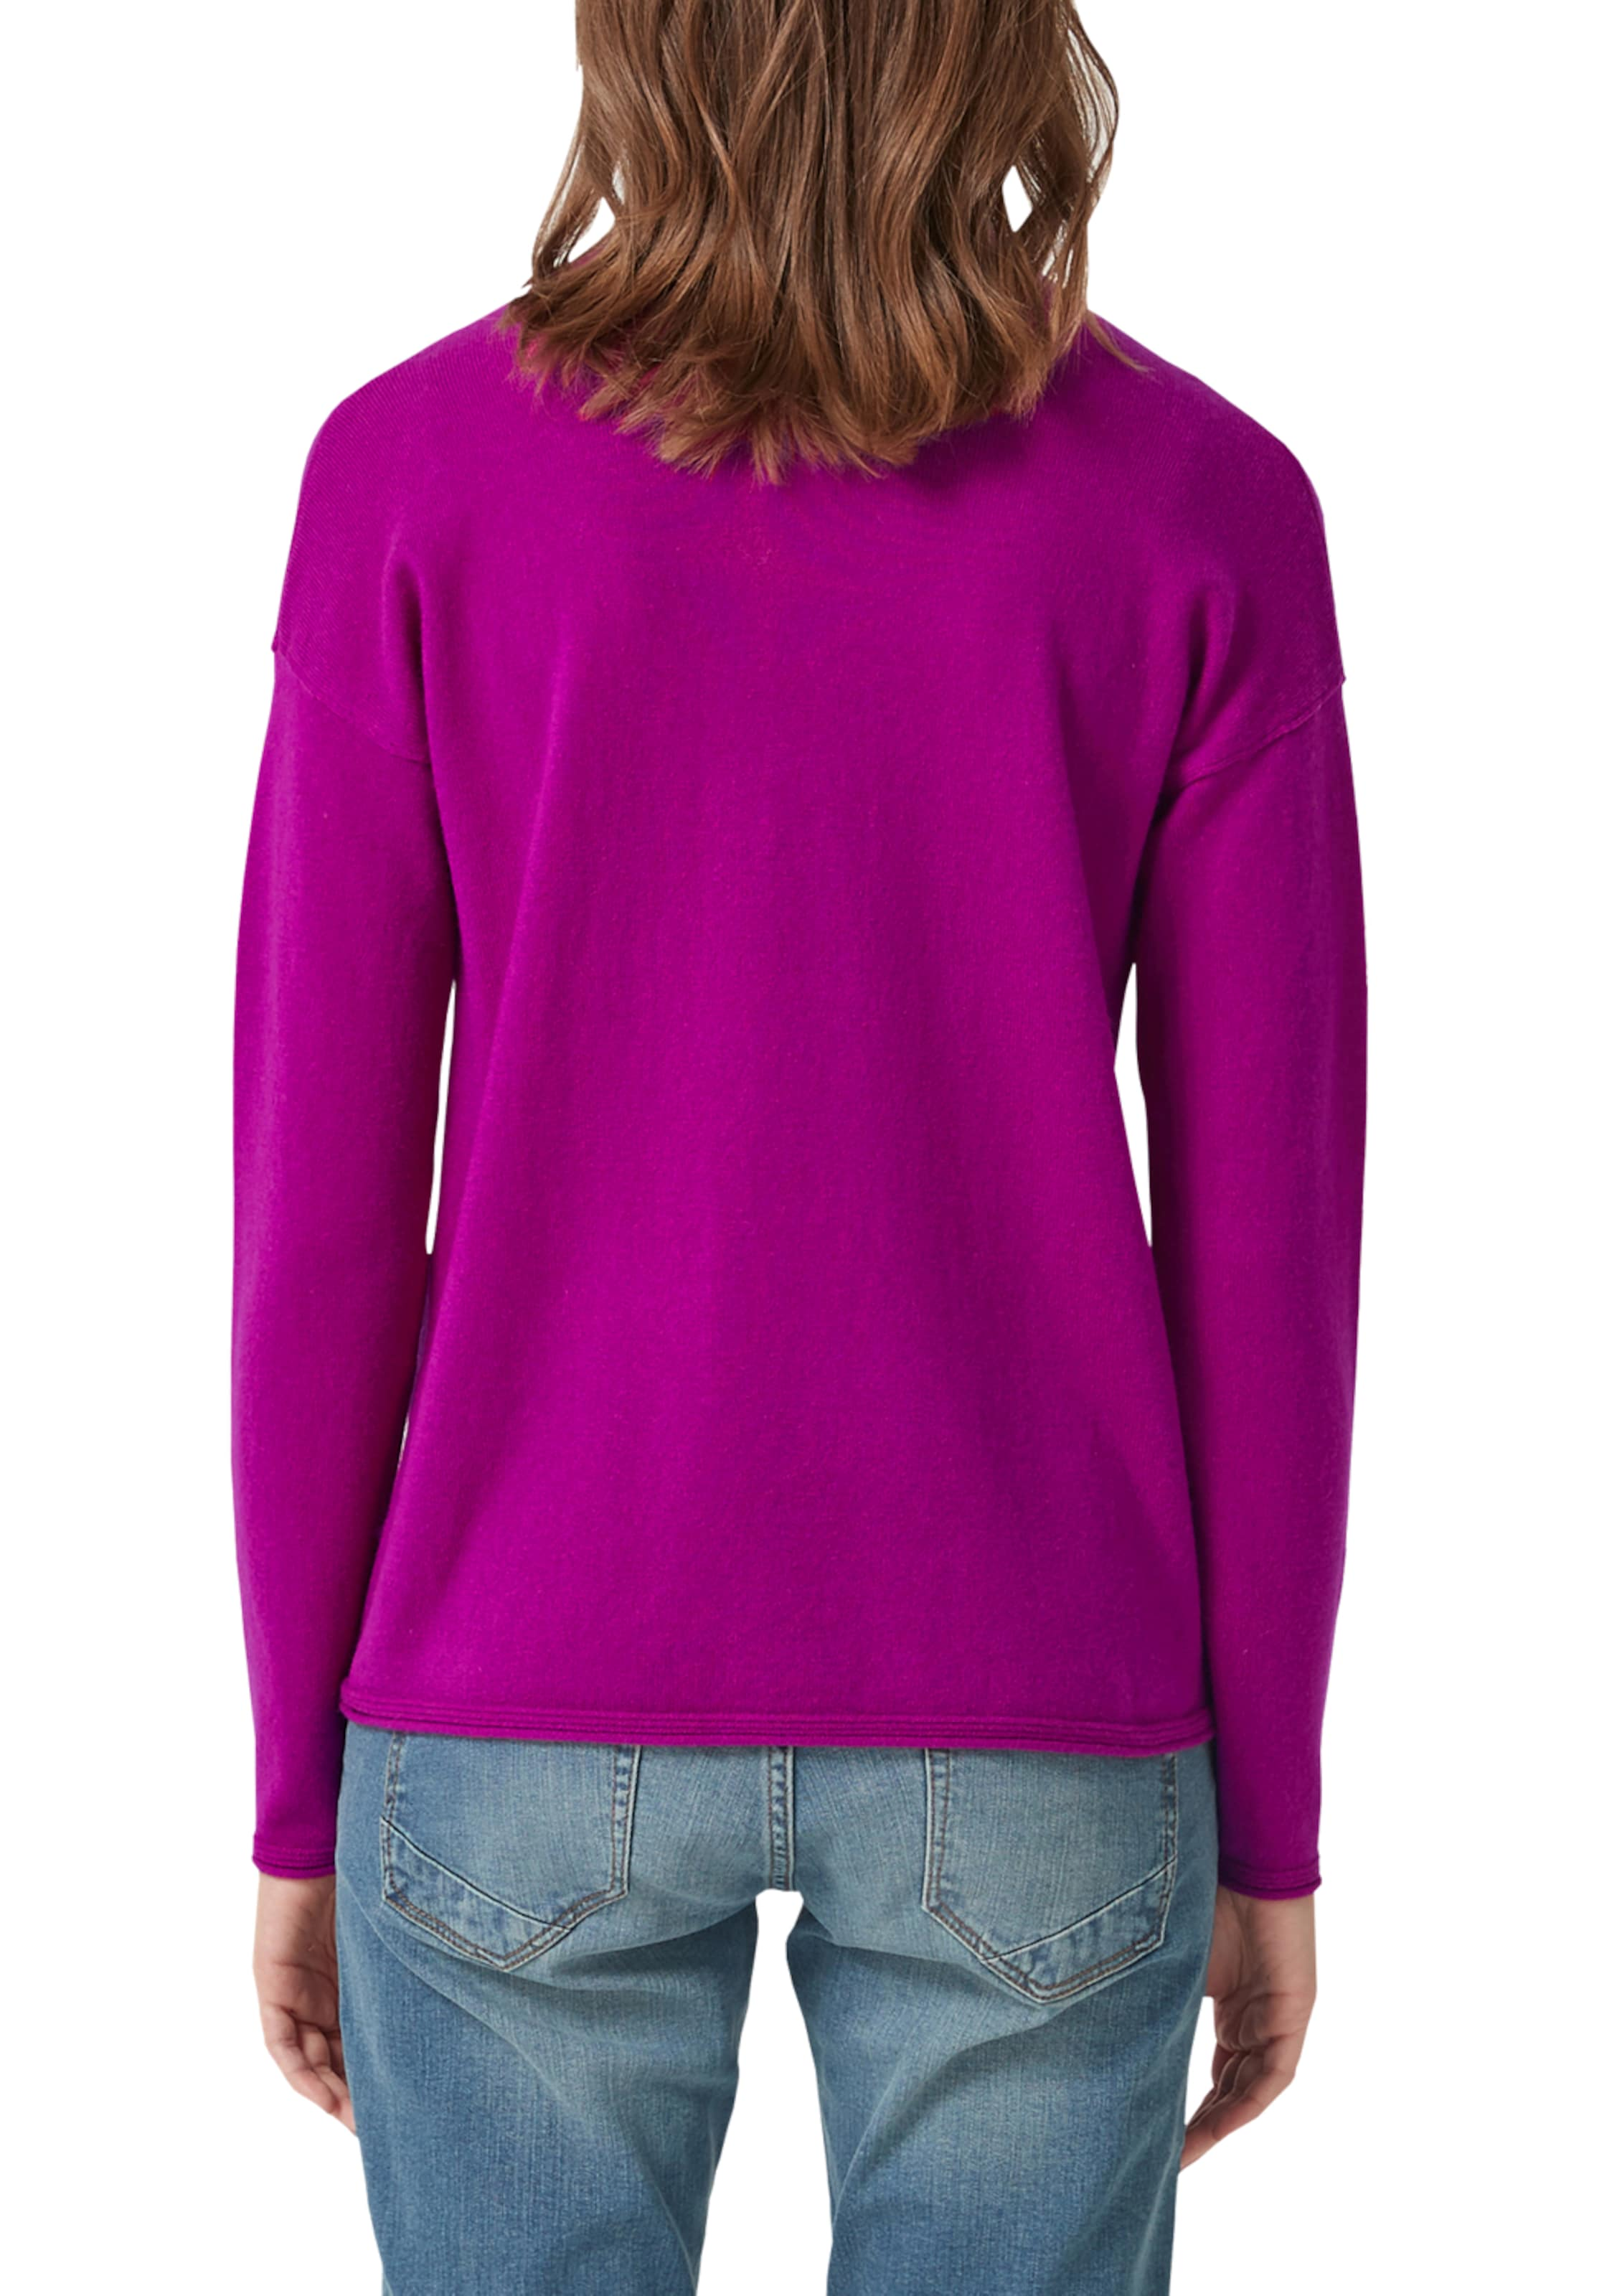 Pullover Cyclam oliver In S S nPXZNkwO80